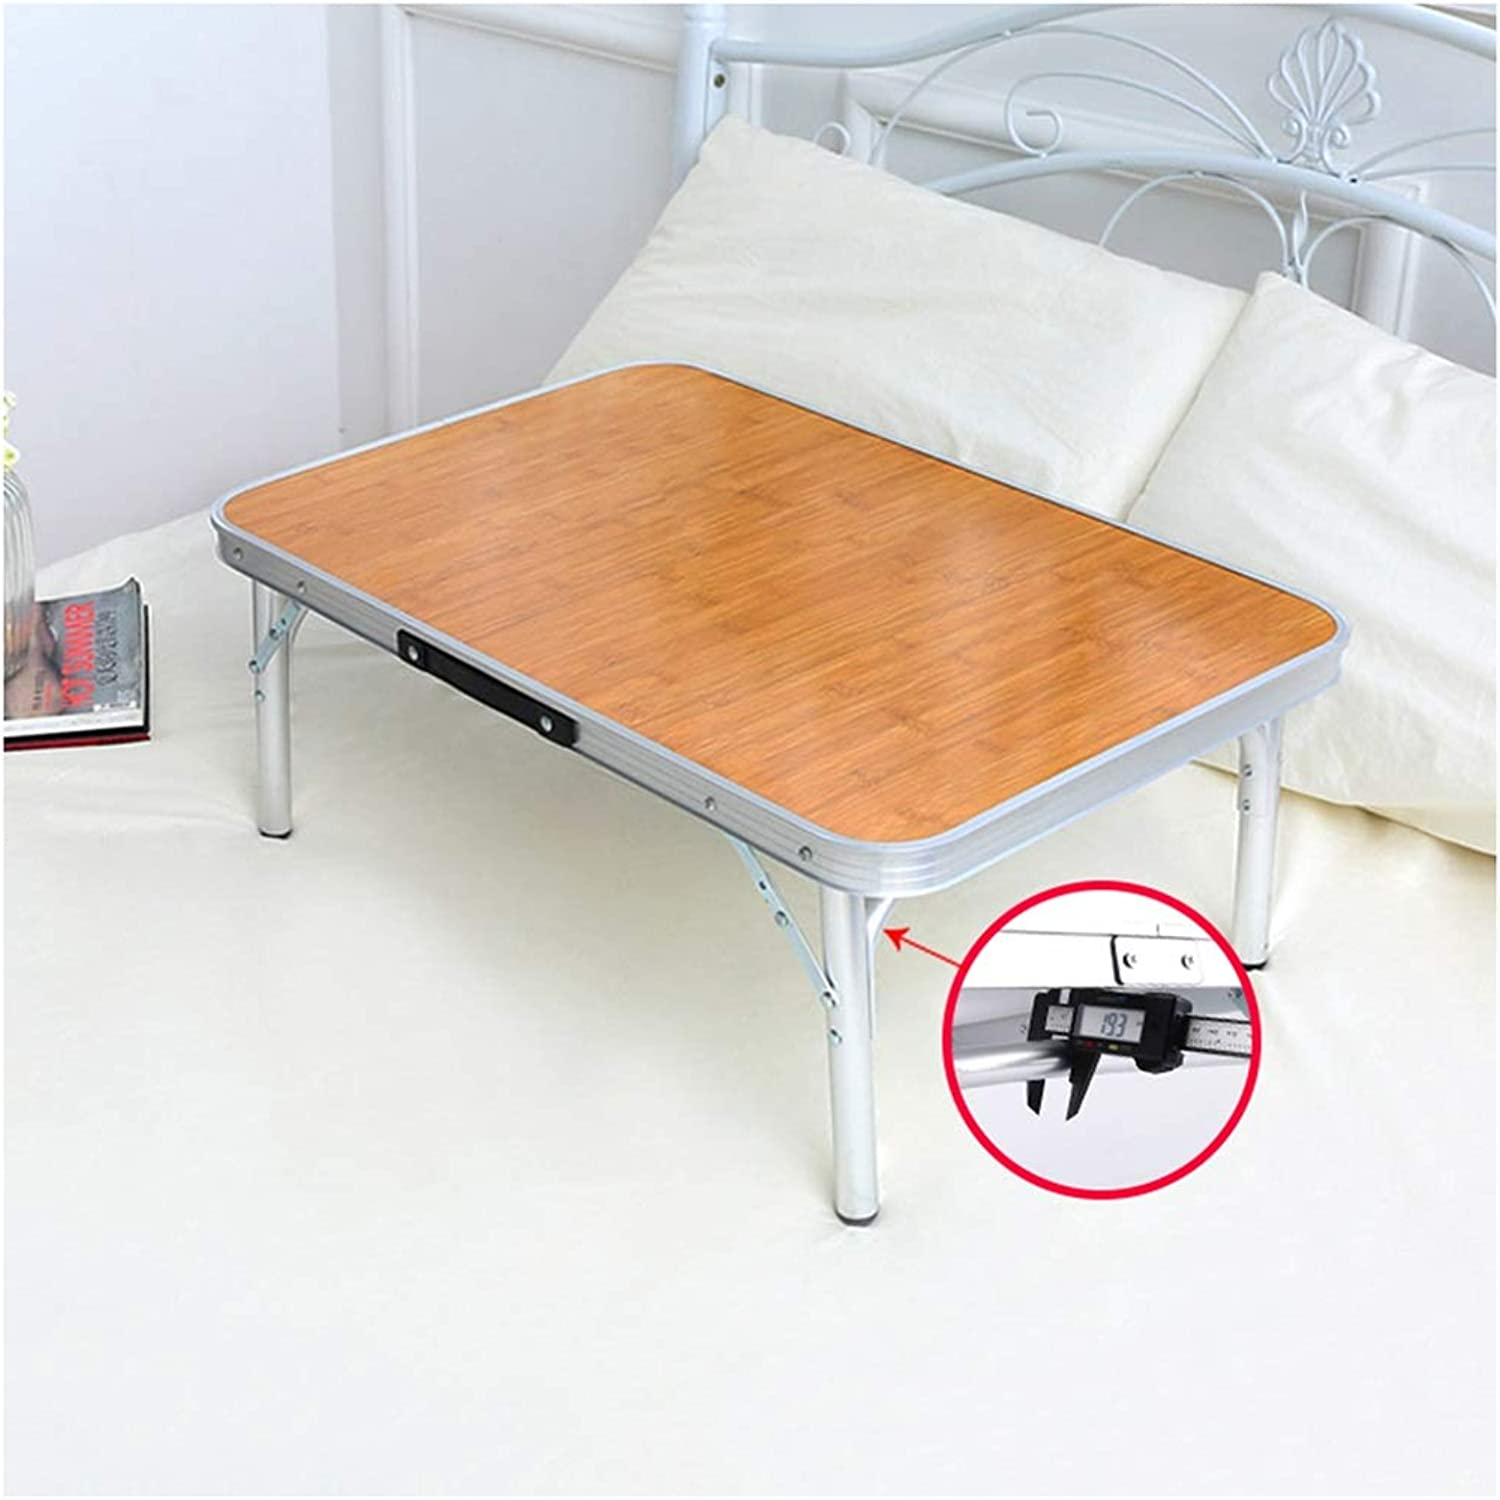 Folding Table Portable Aluminum Folding Table - Bed Laptop Desk Student Dormitory Learning Table (color   Brown, Size   60x40x26cm)